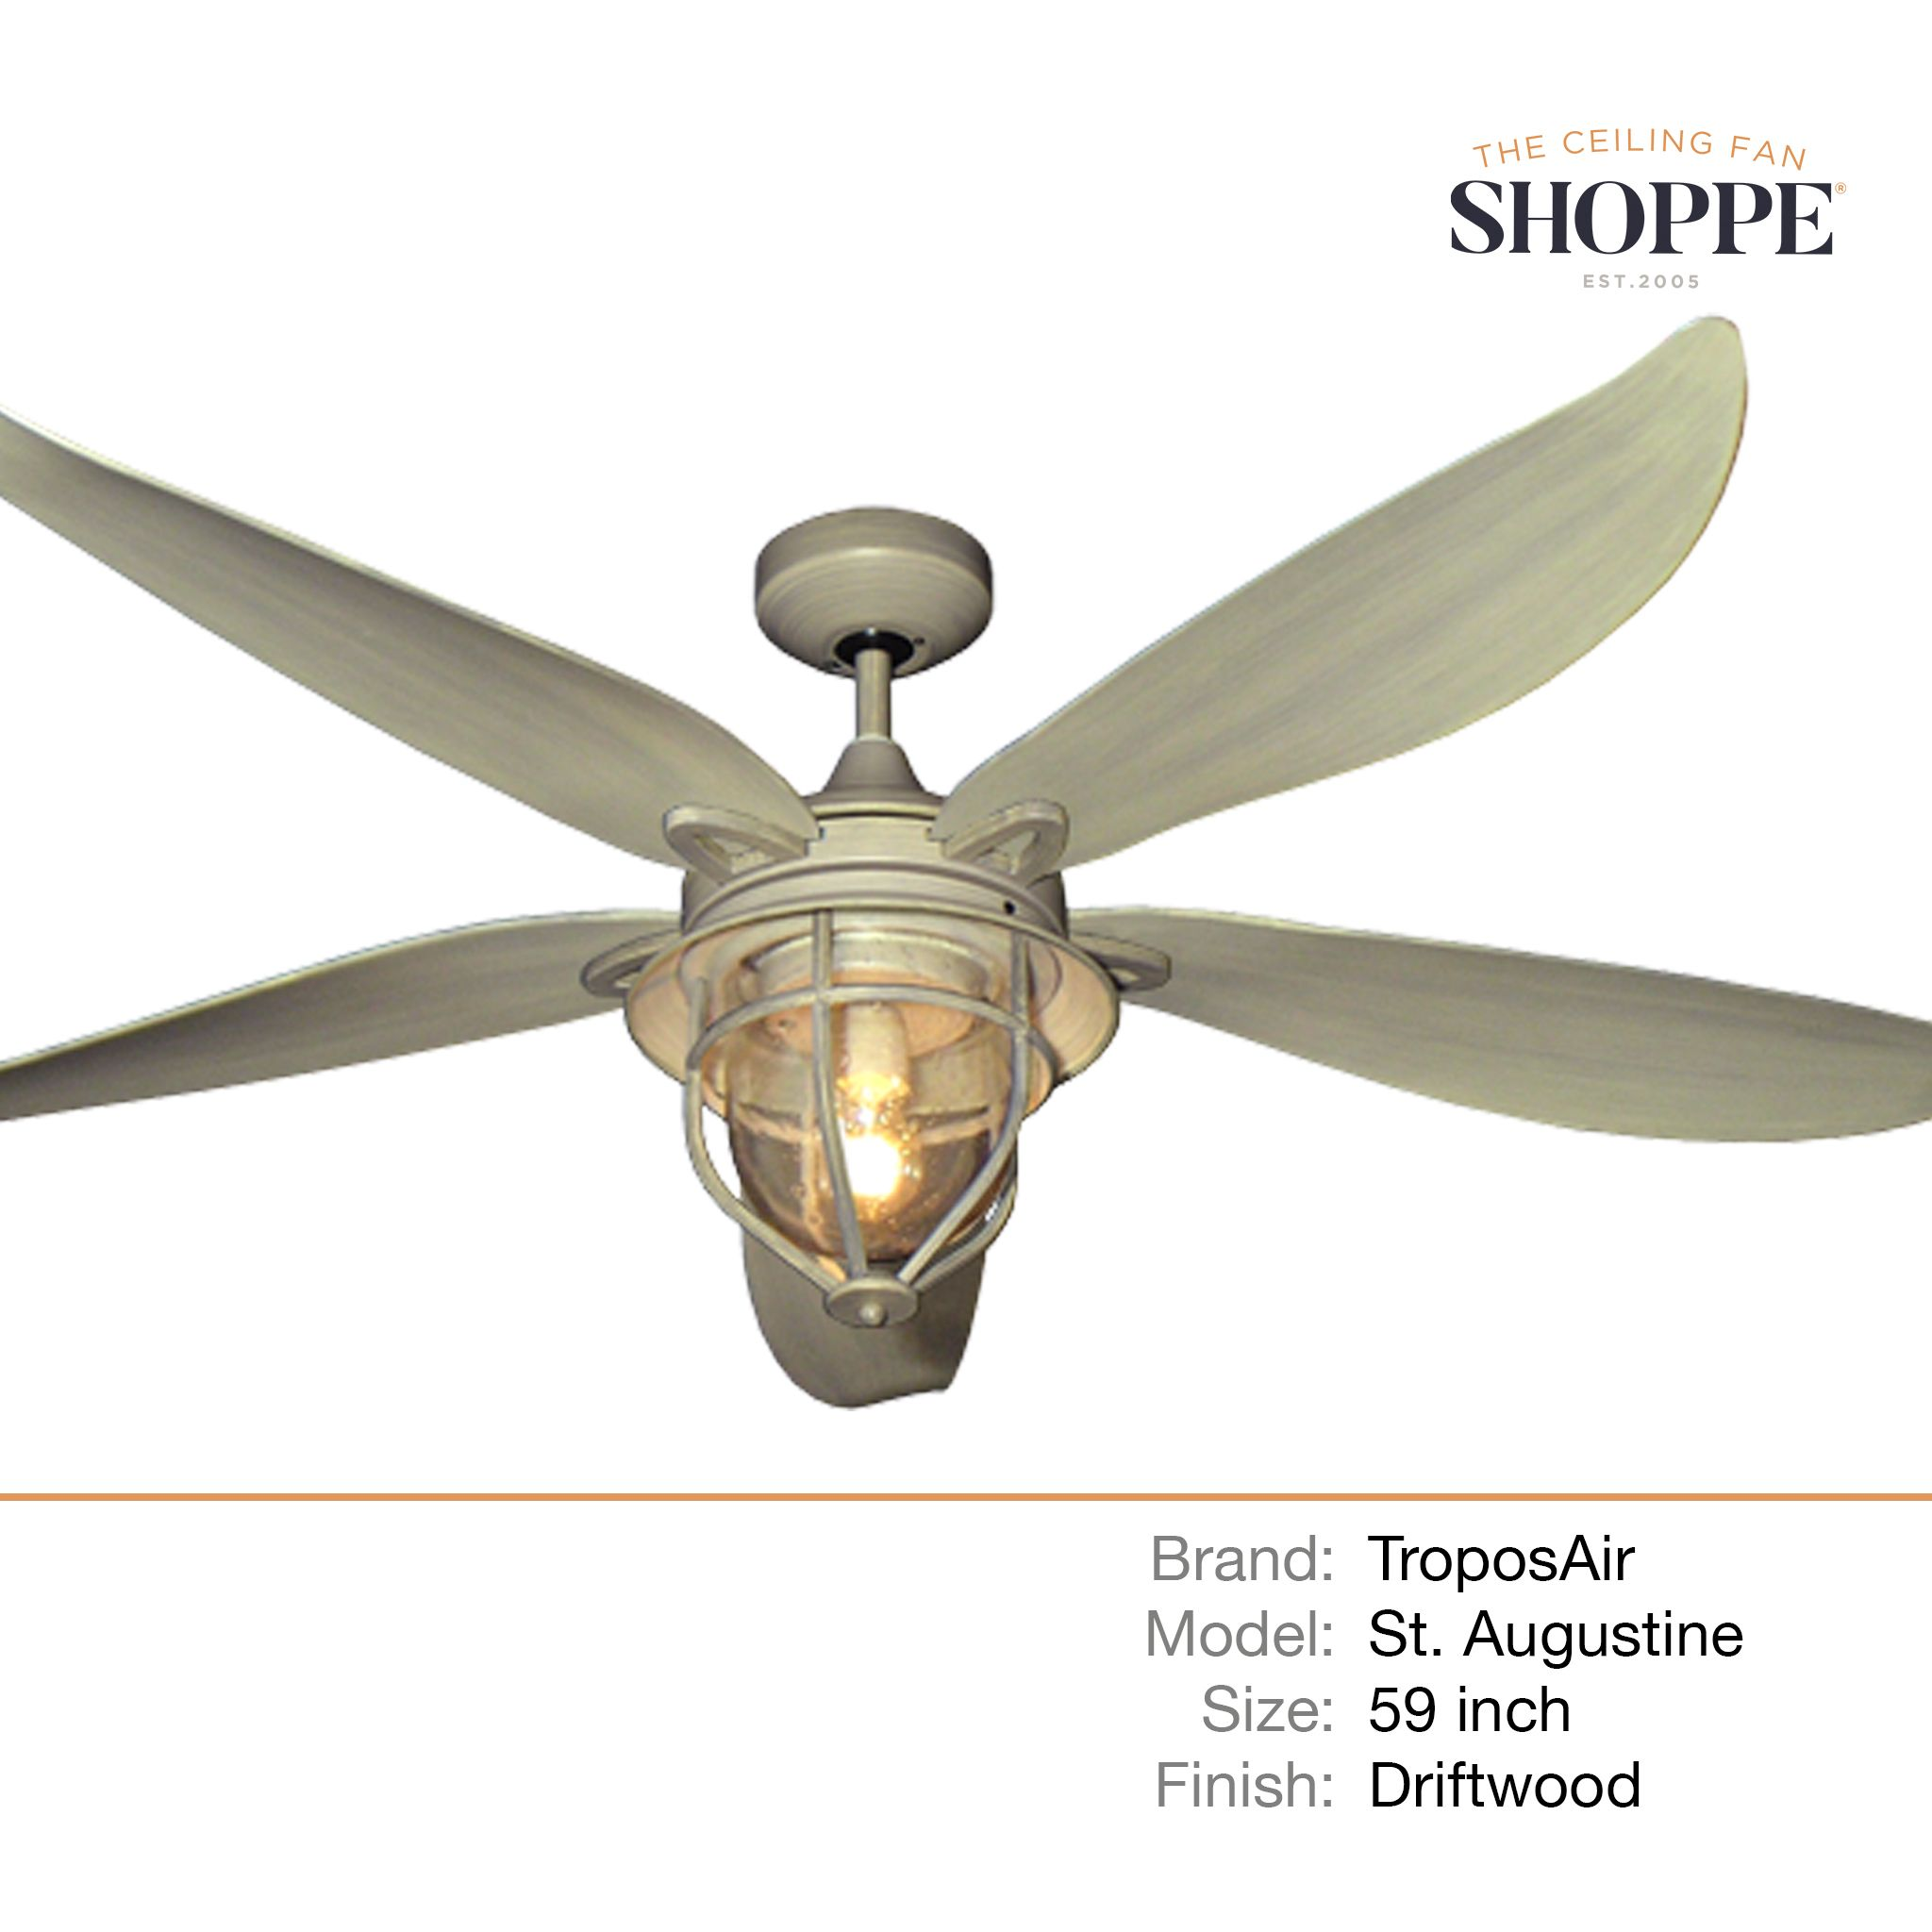 60 Inch St Augustine Ceiling Fan By Troposair Driftwood In 2020